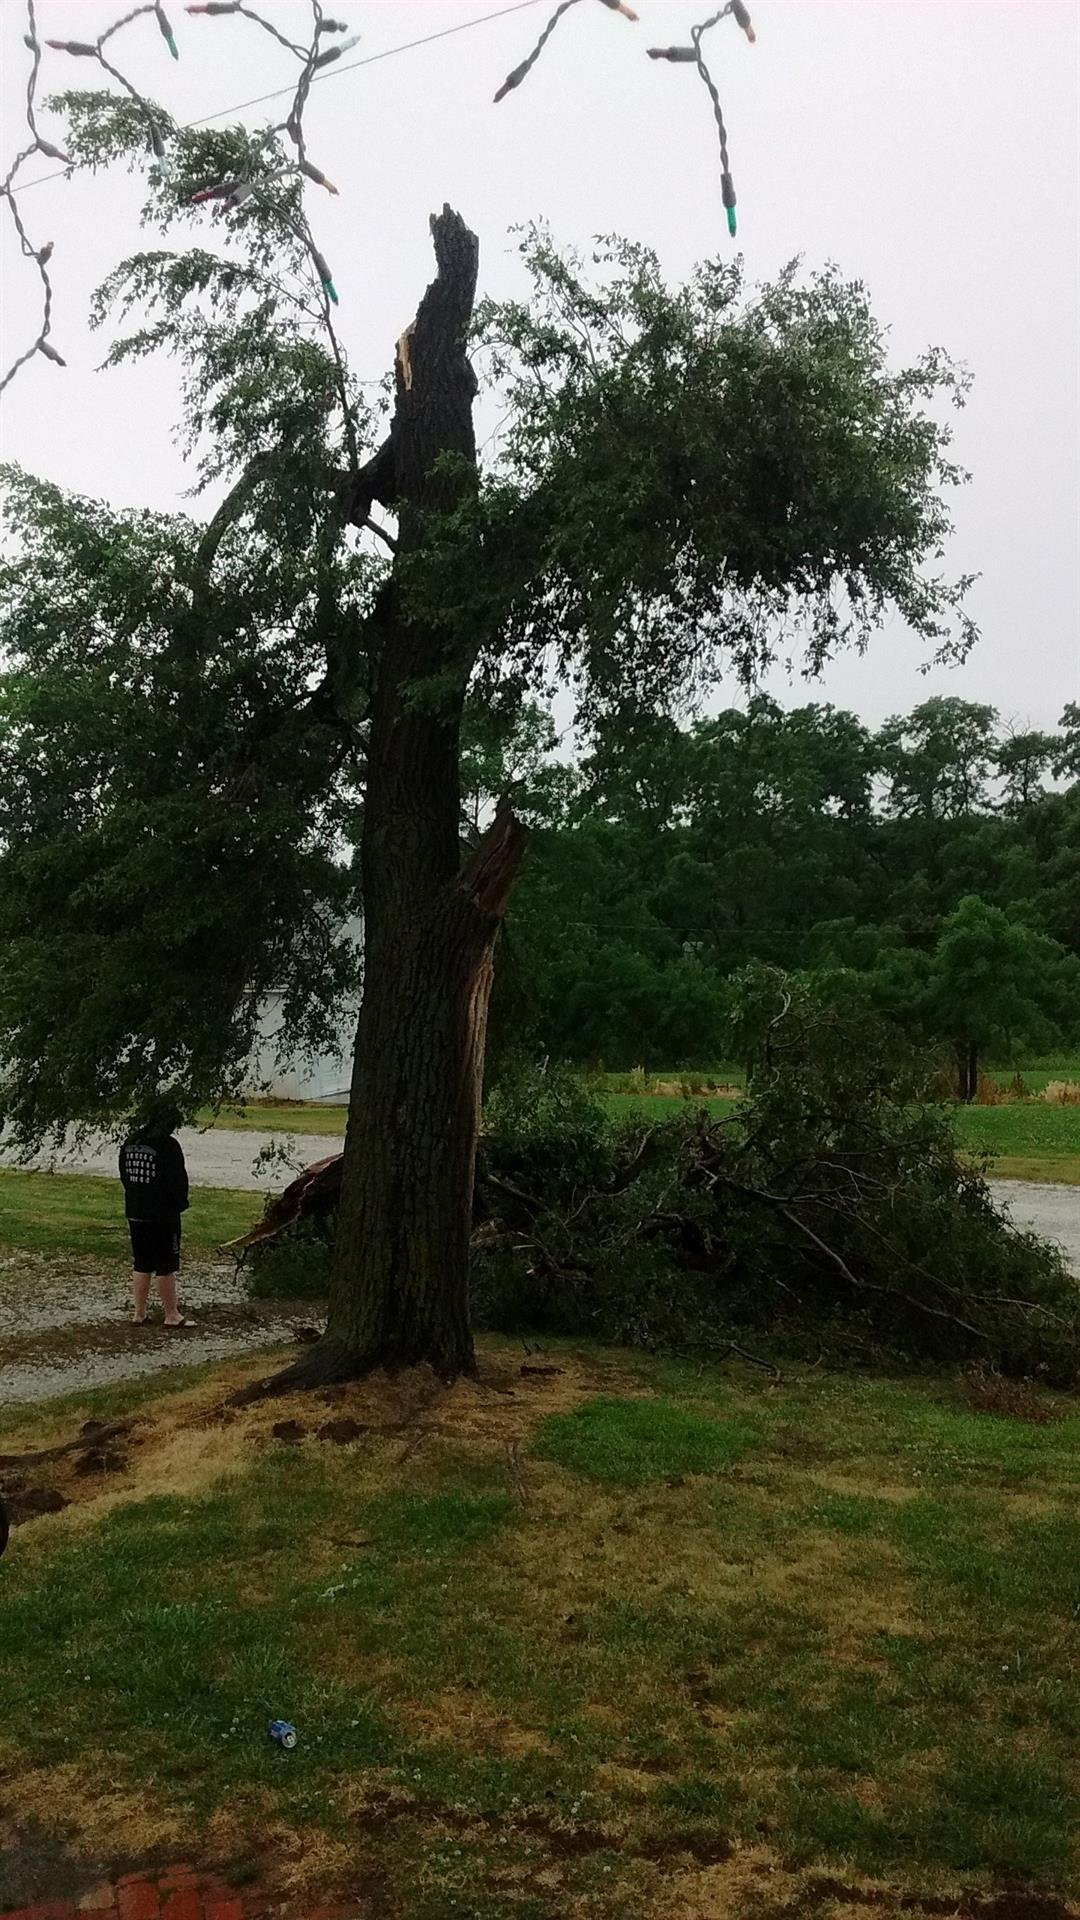 Tree damaged Wednesday in Rushville at 2 p.m. (Submitted by Rick Carty)